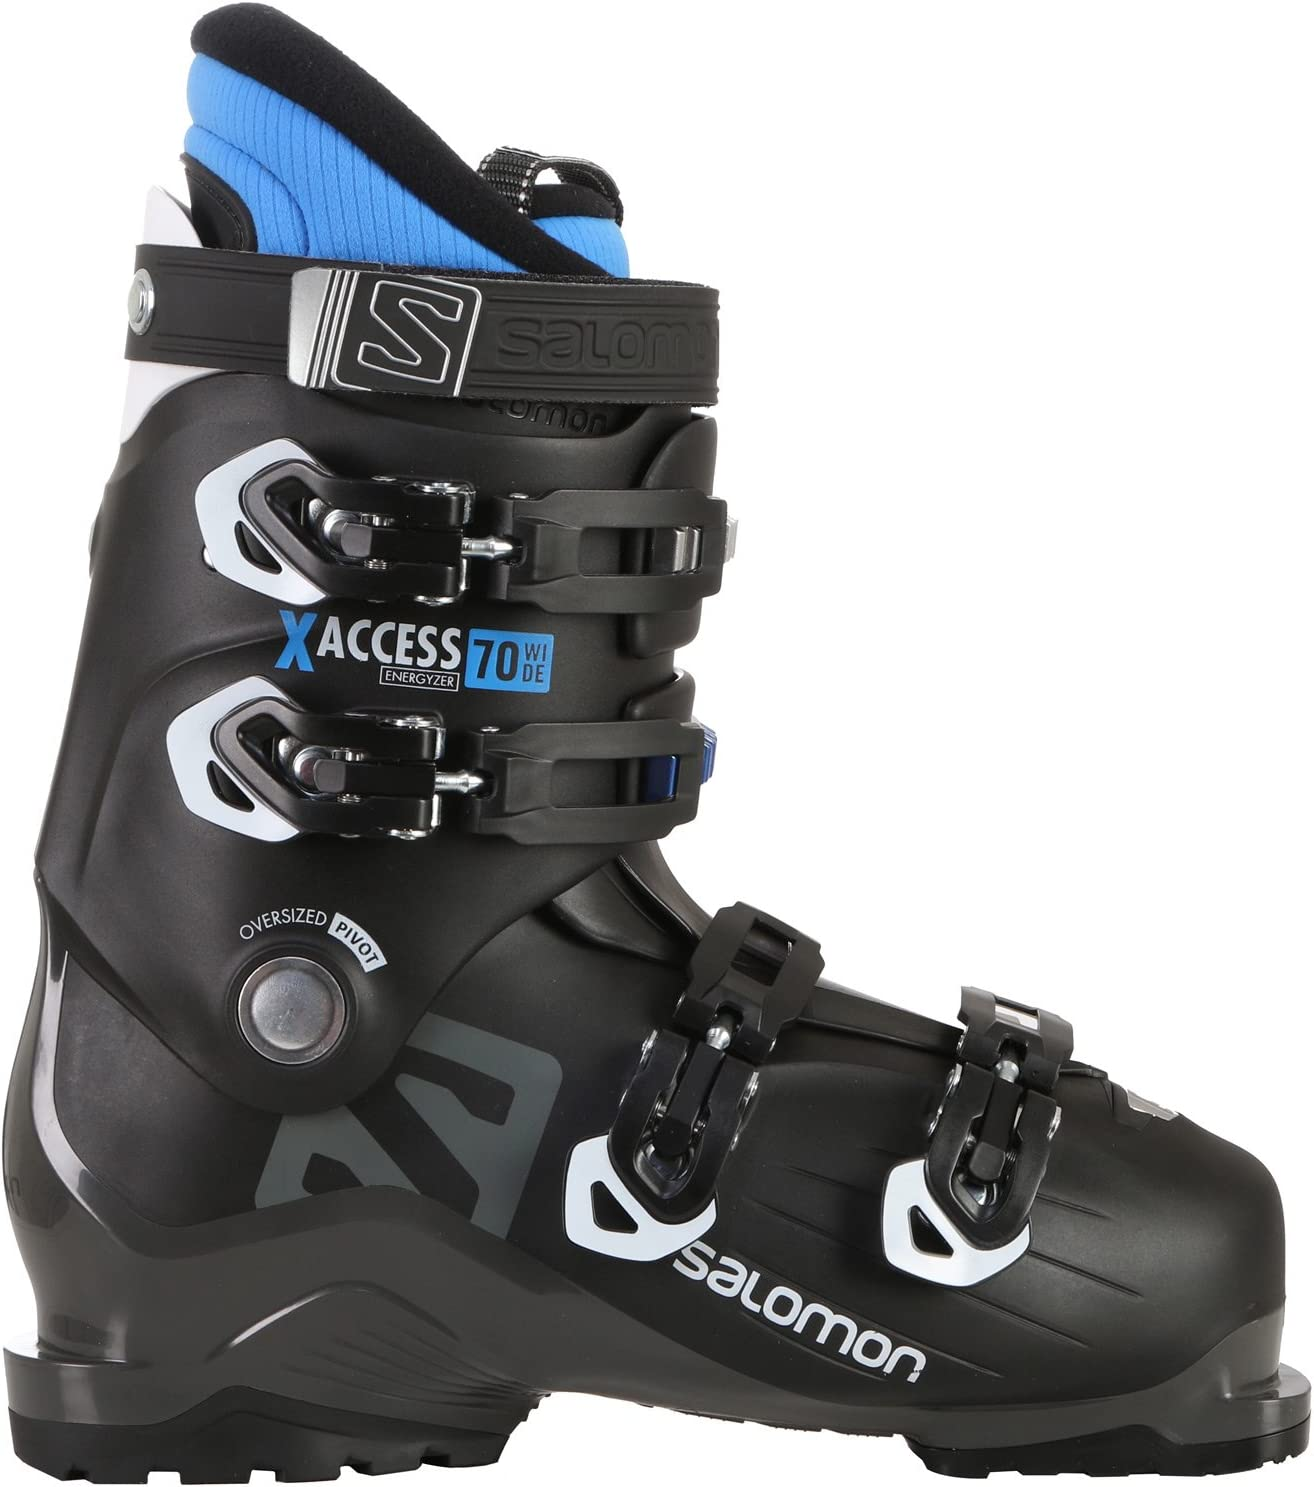 Amazon.com: Salomon X Access 70 - Botas de esquí para hombre ...